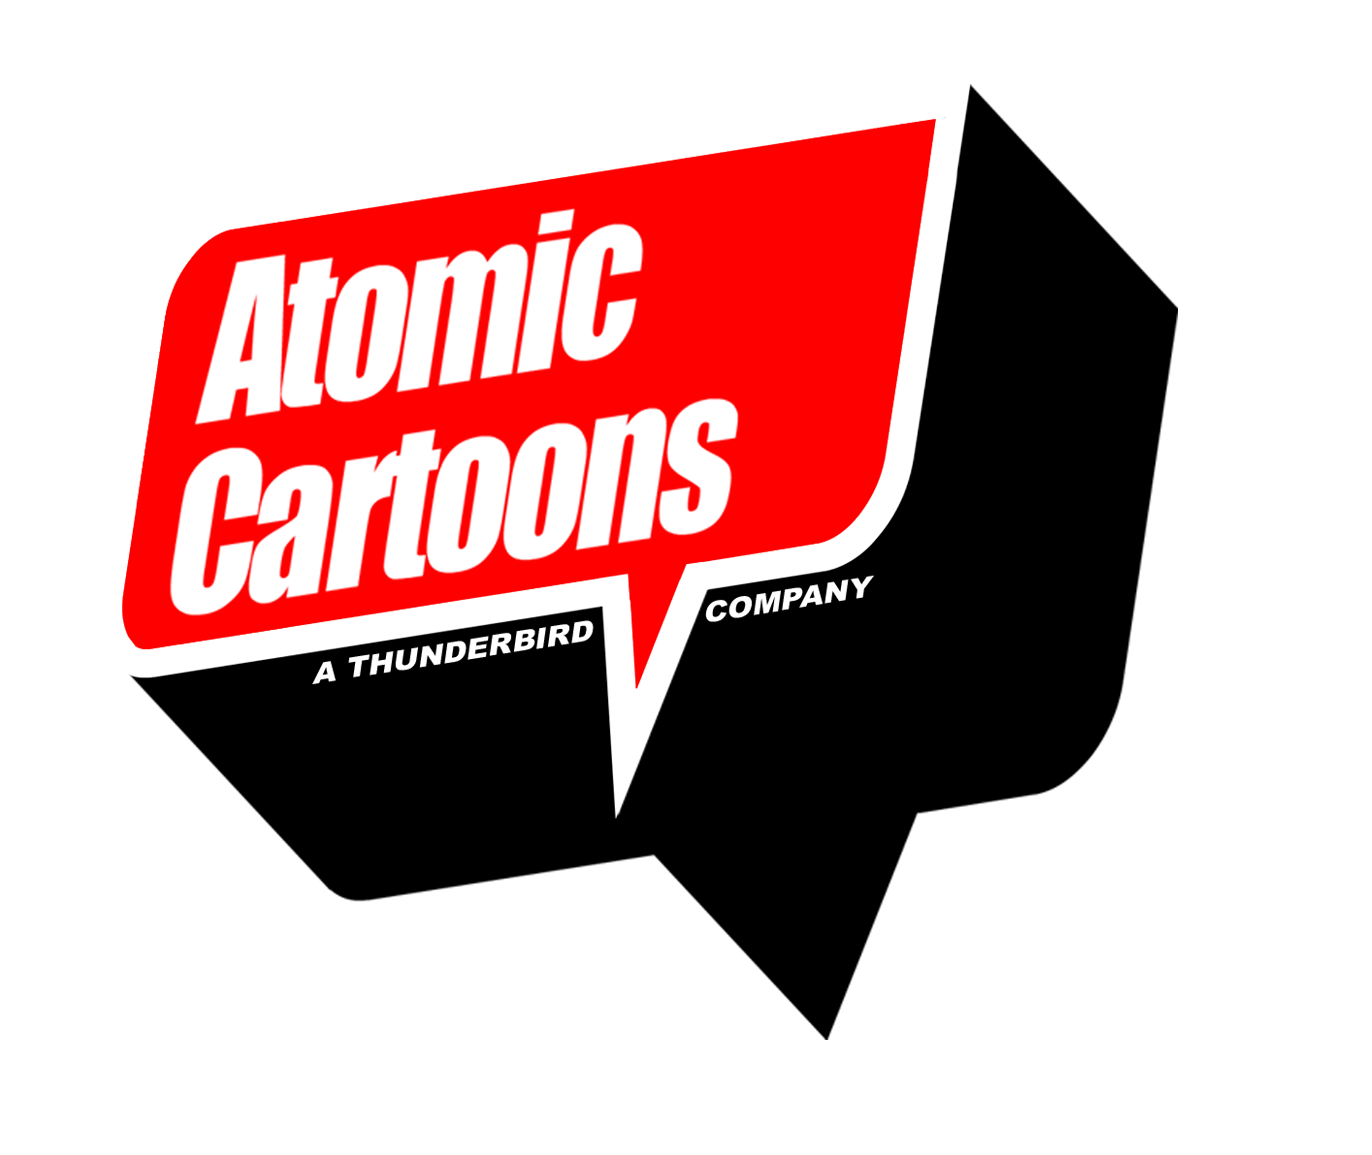 atomic-cartoons-story-featured-logo